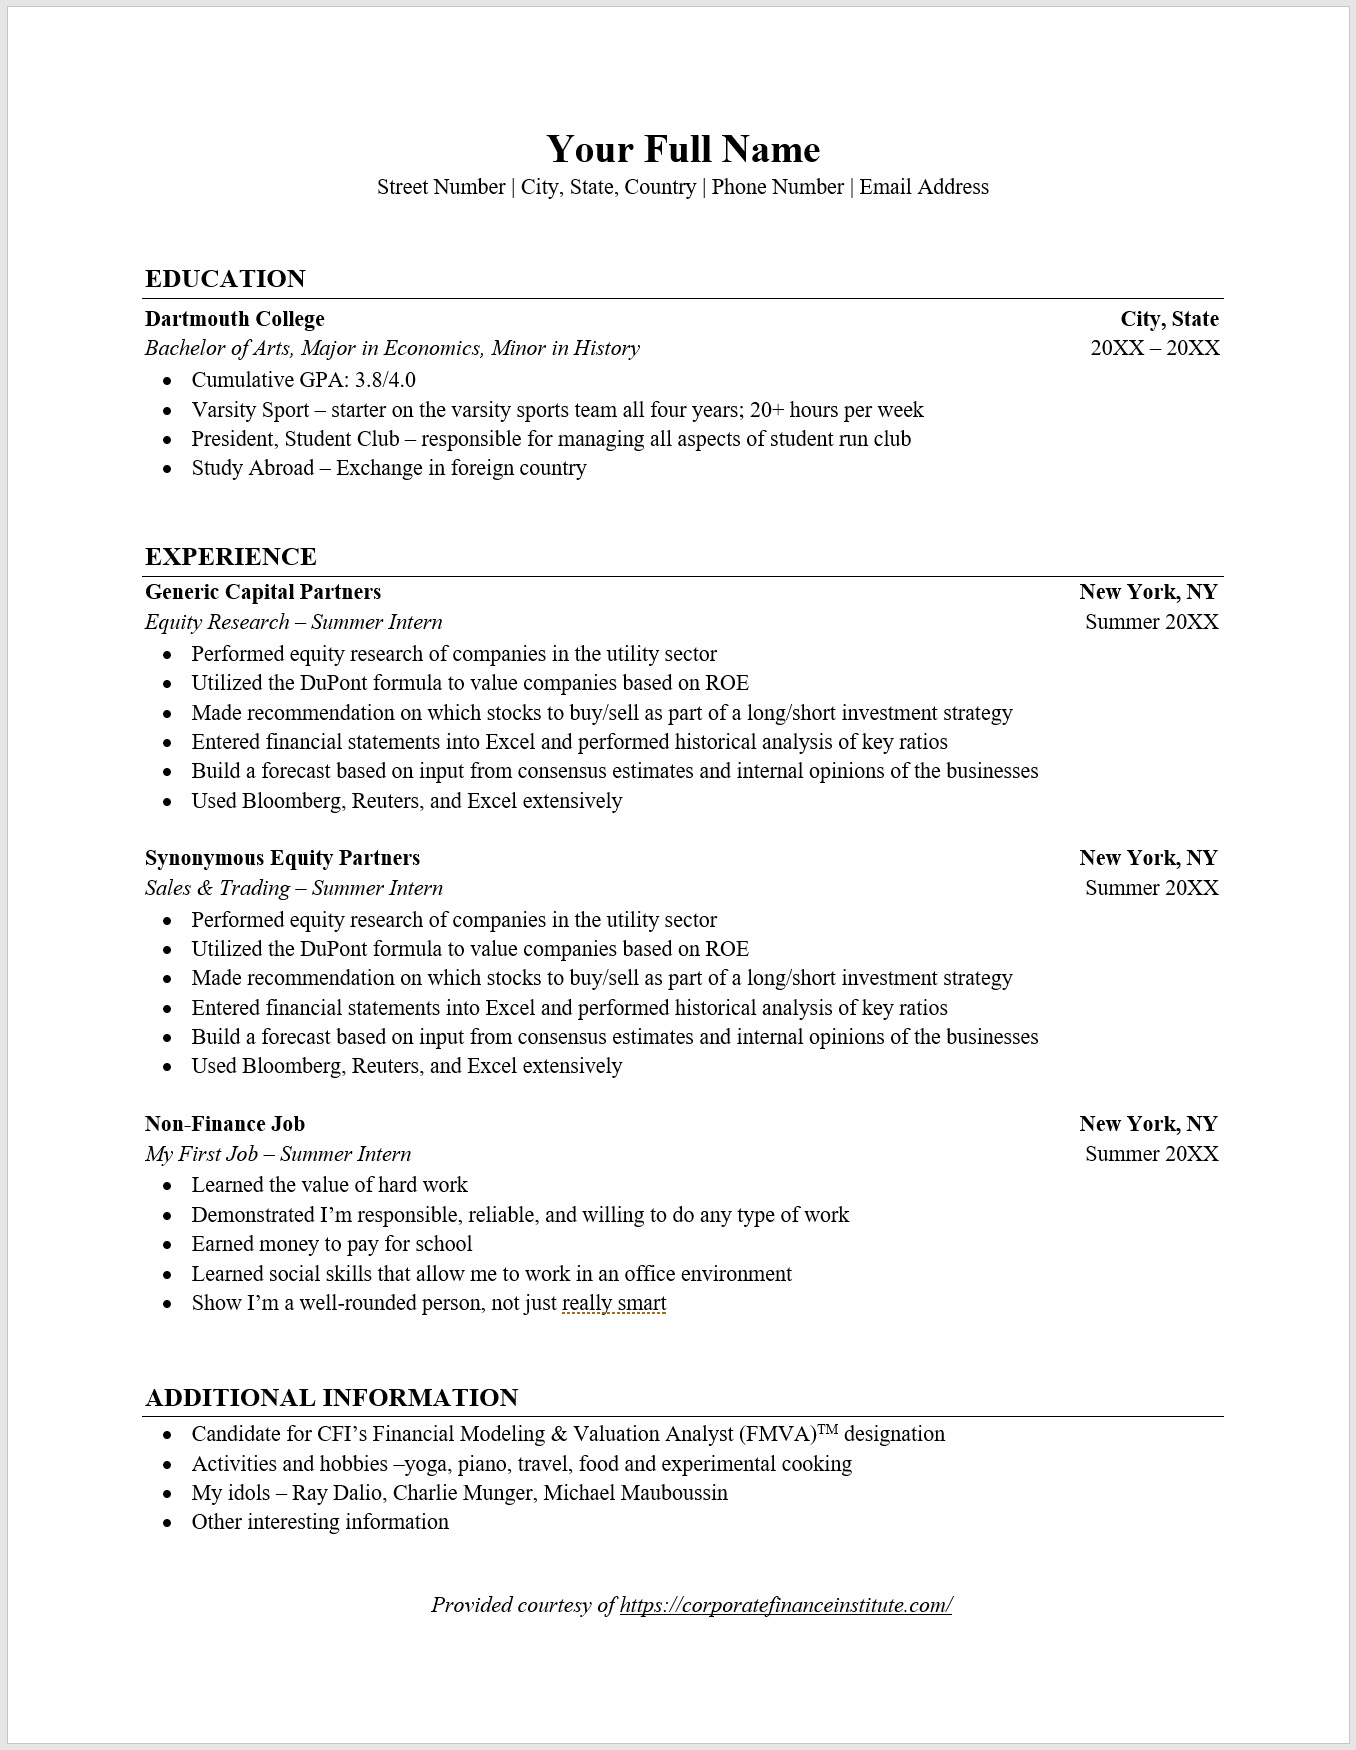 Attractive Download The Free IB Resume Template